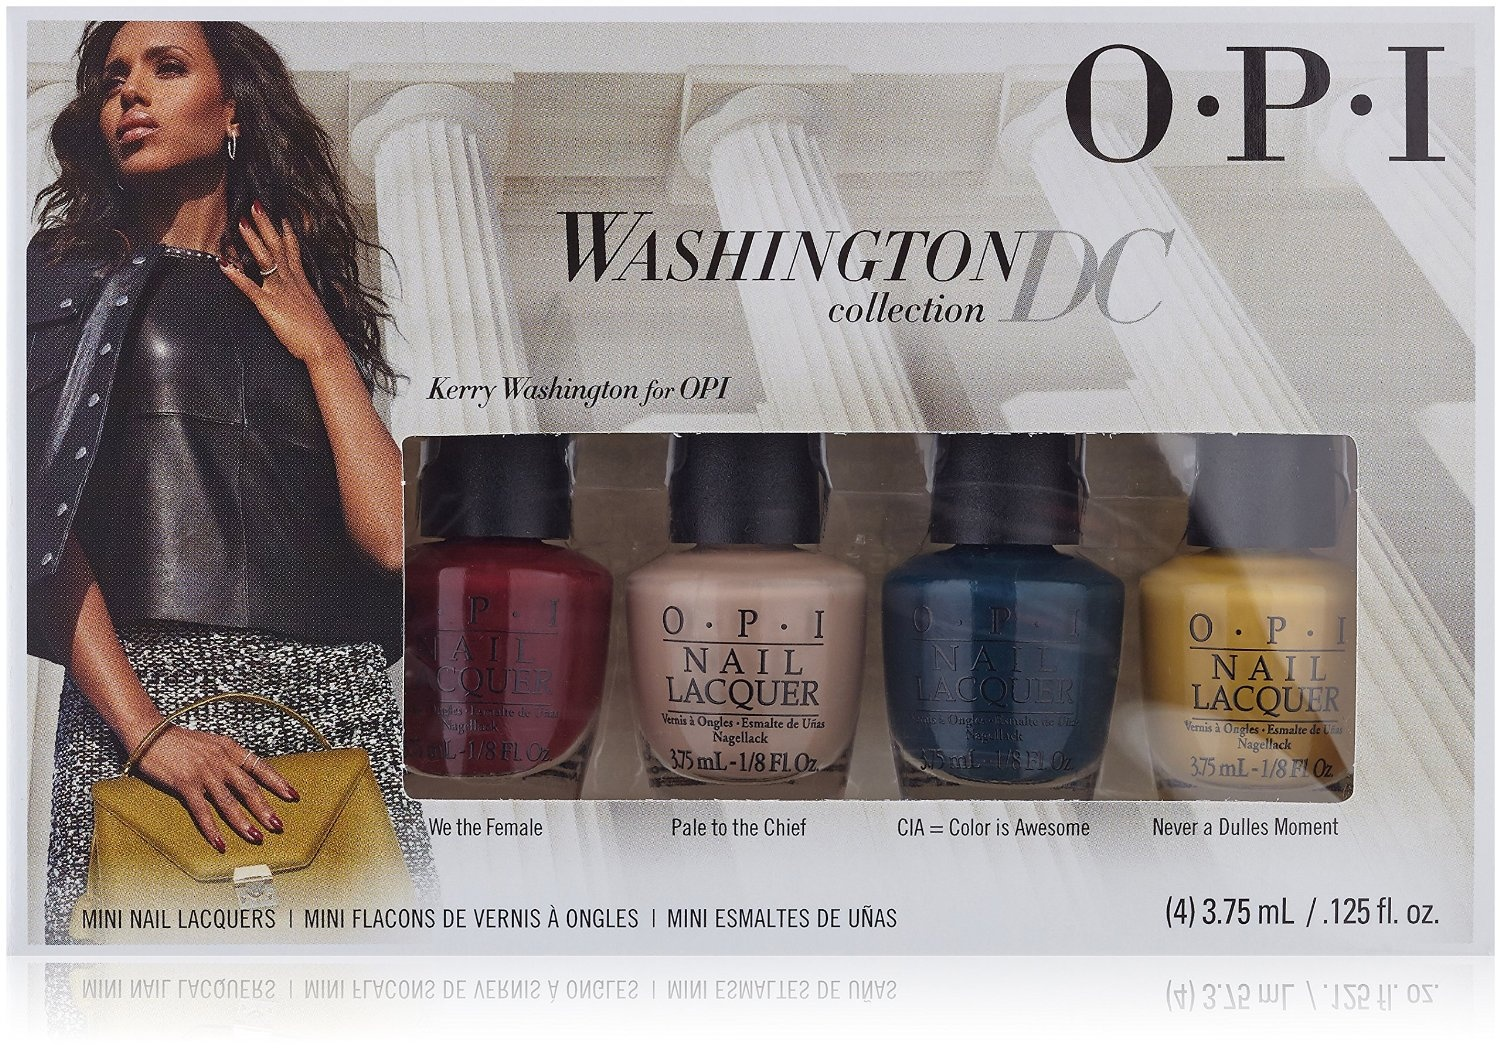 Opi Nail Sets Beauty: Buy Online from Fishpond.co.nz